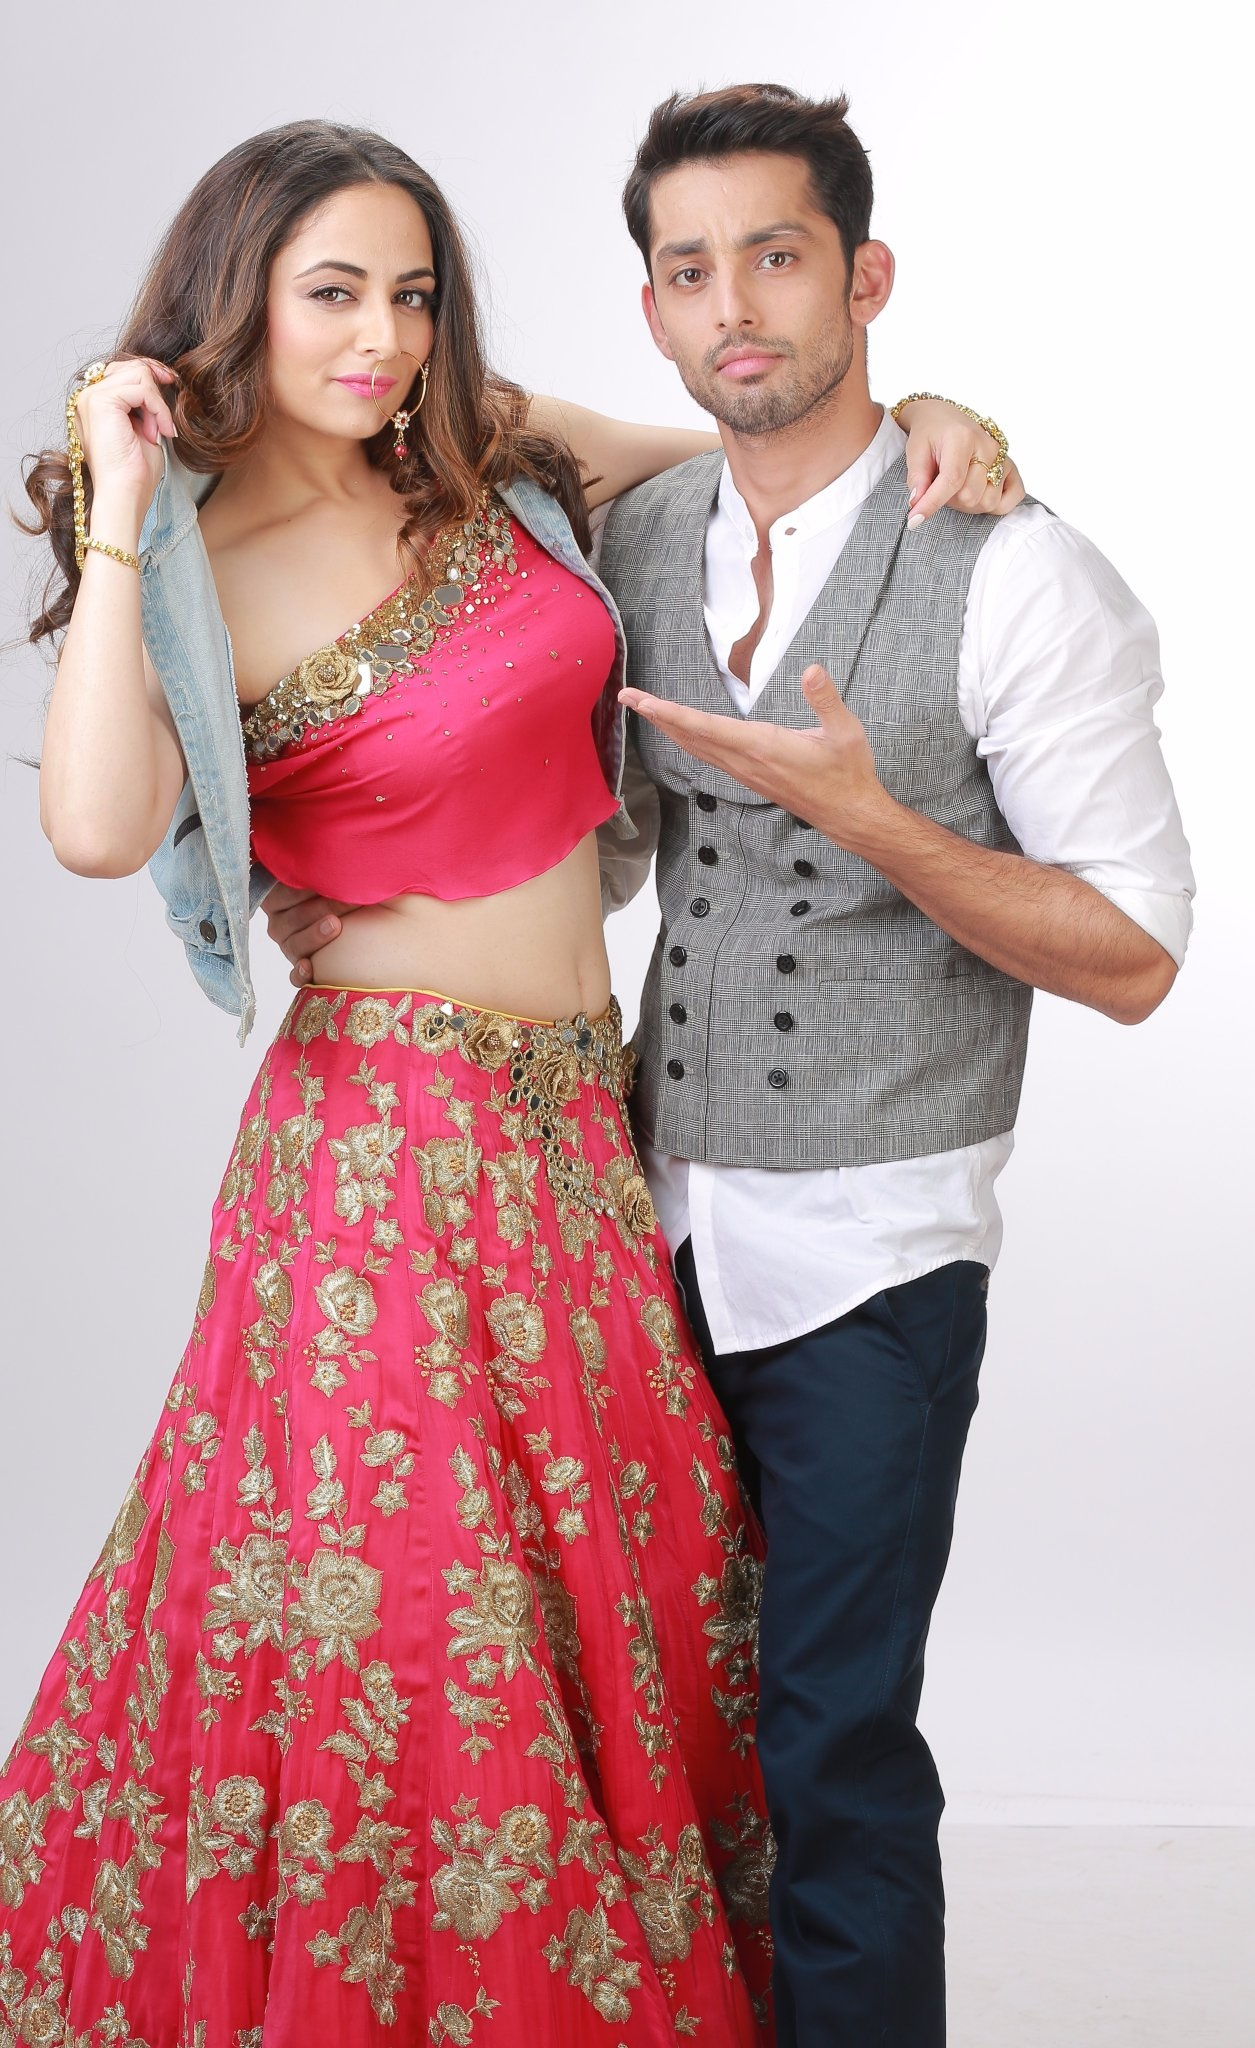 Zoya Afroz and Himansh Kohli.